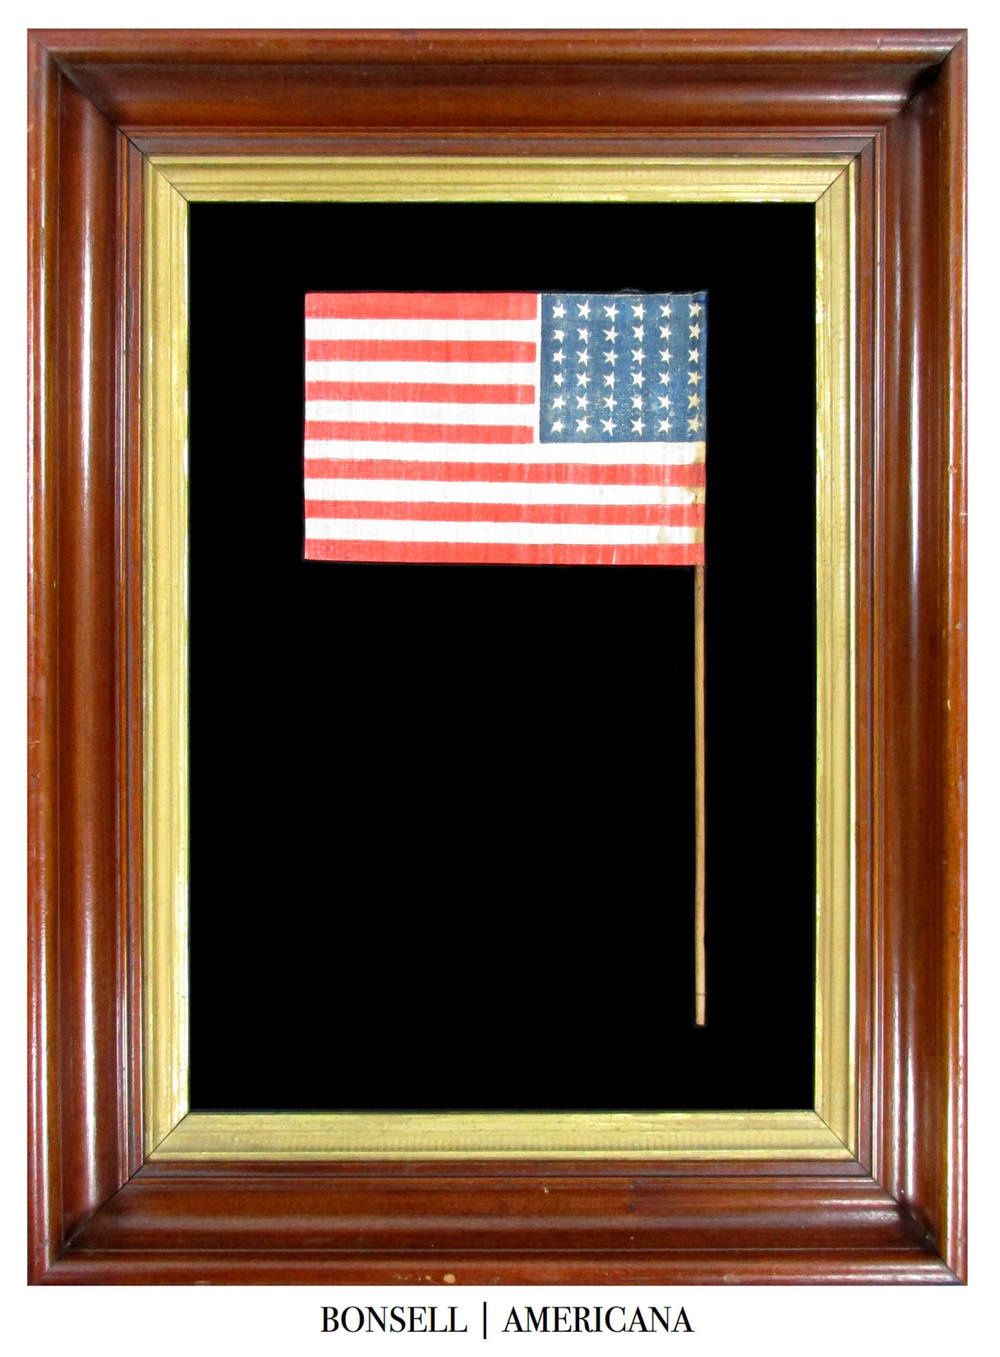 36 Star Antique US Flag